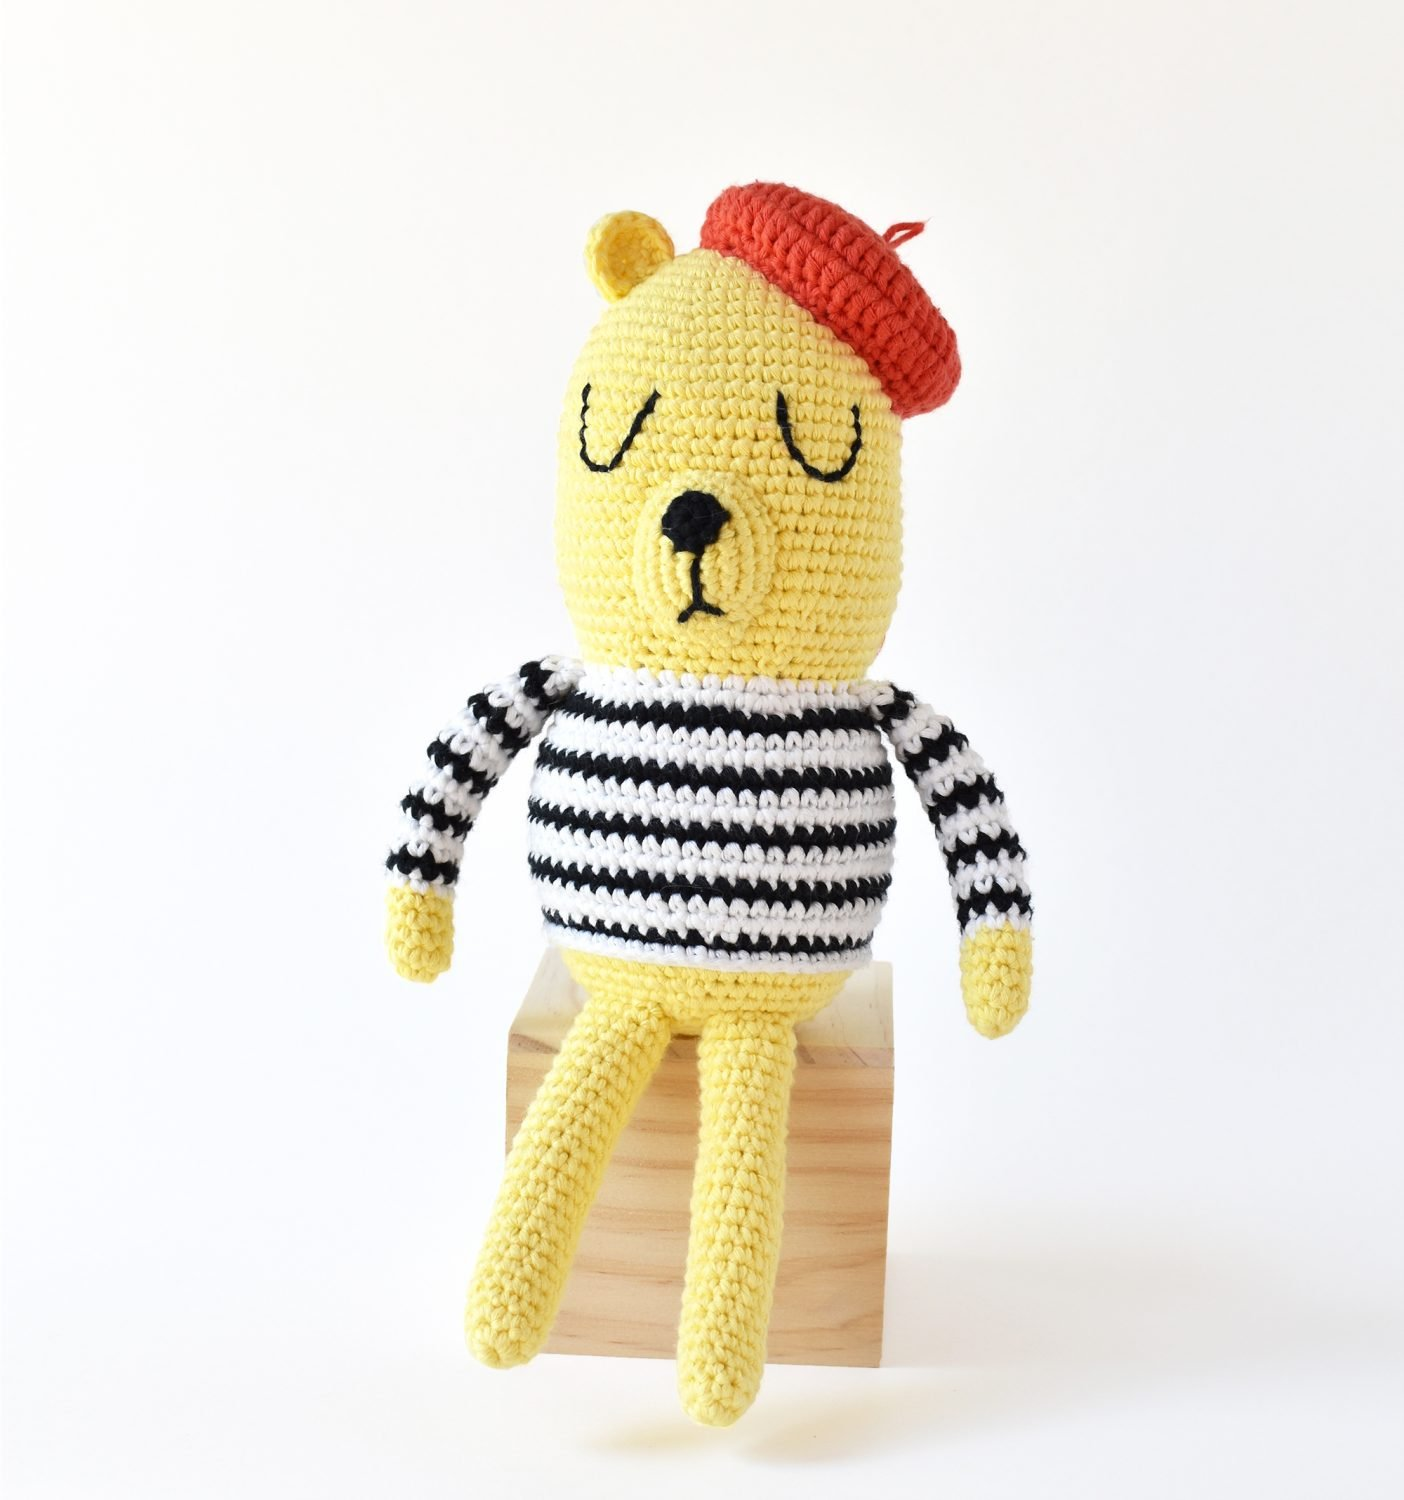 Showing Monsieur Bear amigurumi doll with his striped crochet sweater and crochet beret. This free crochet pattern was made by Tiny Curl.